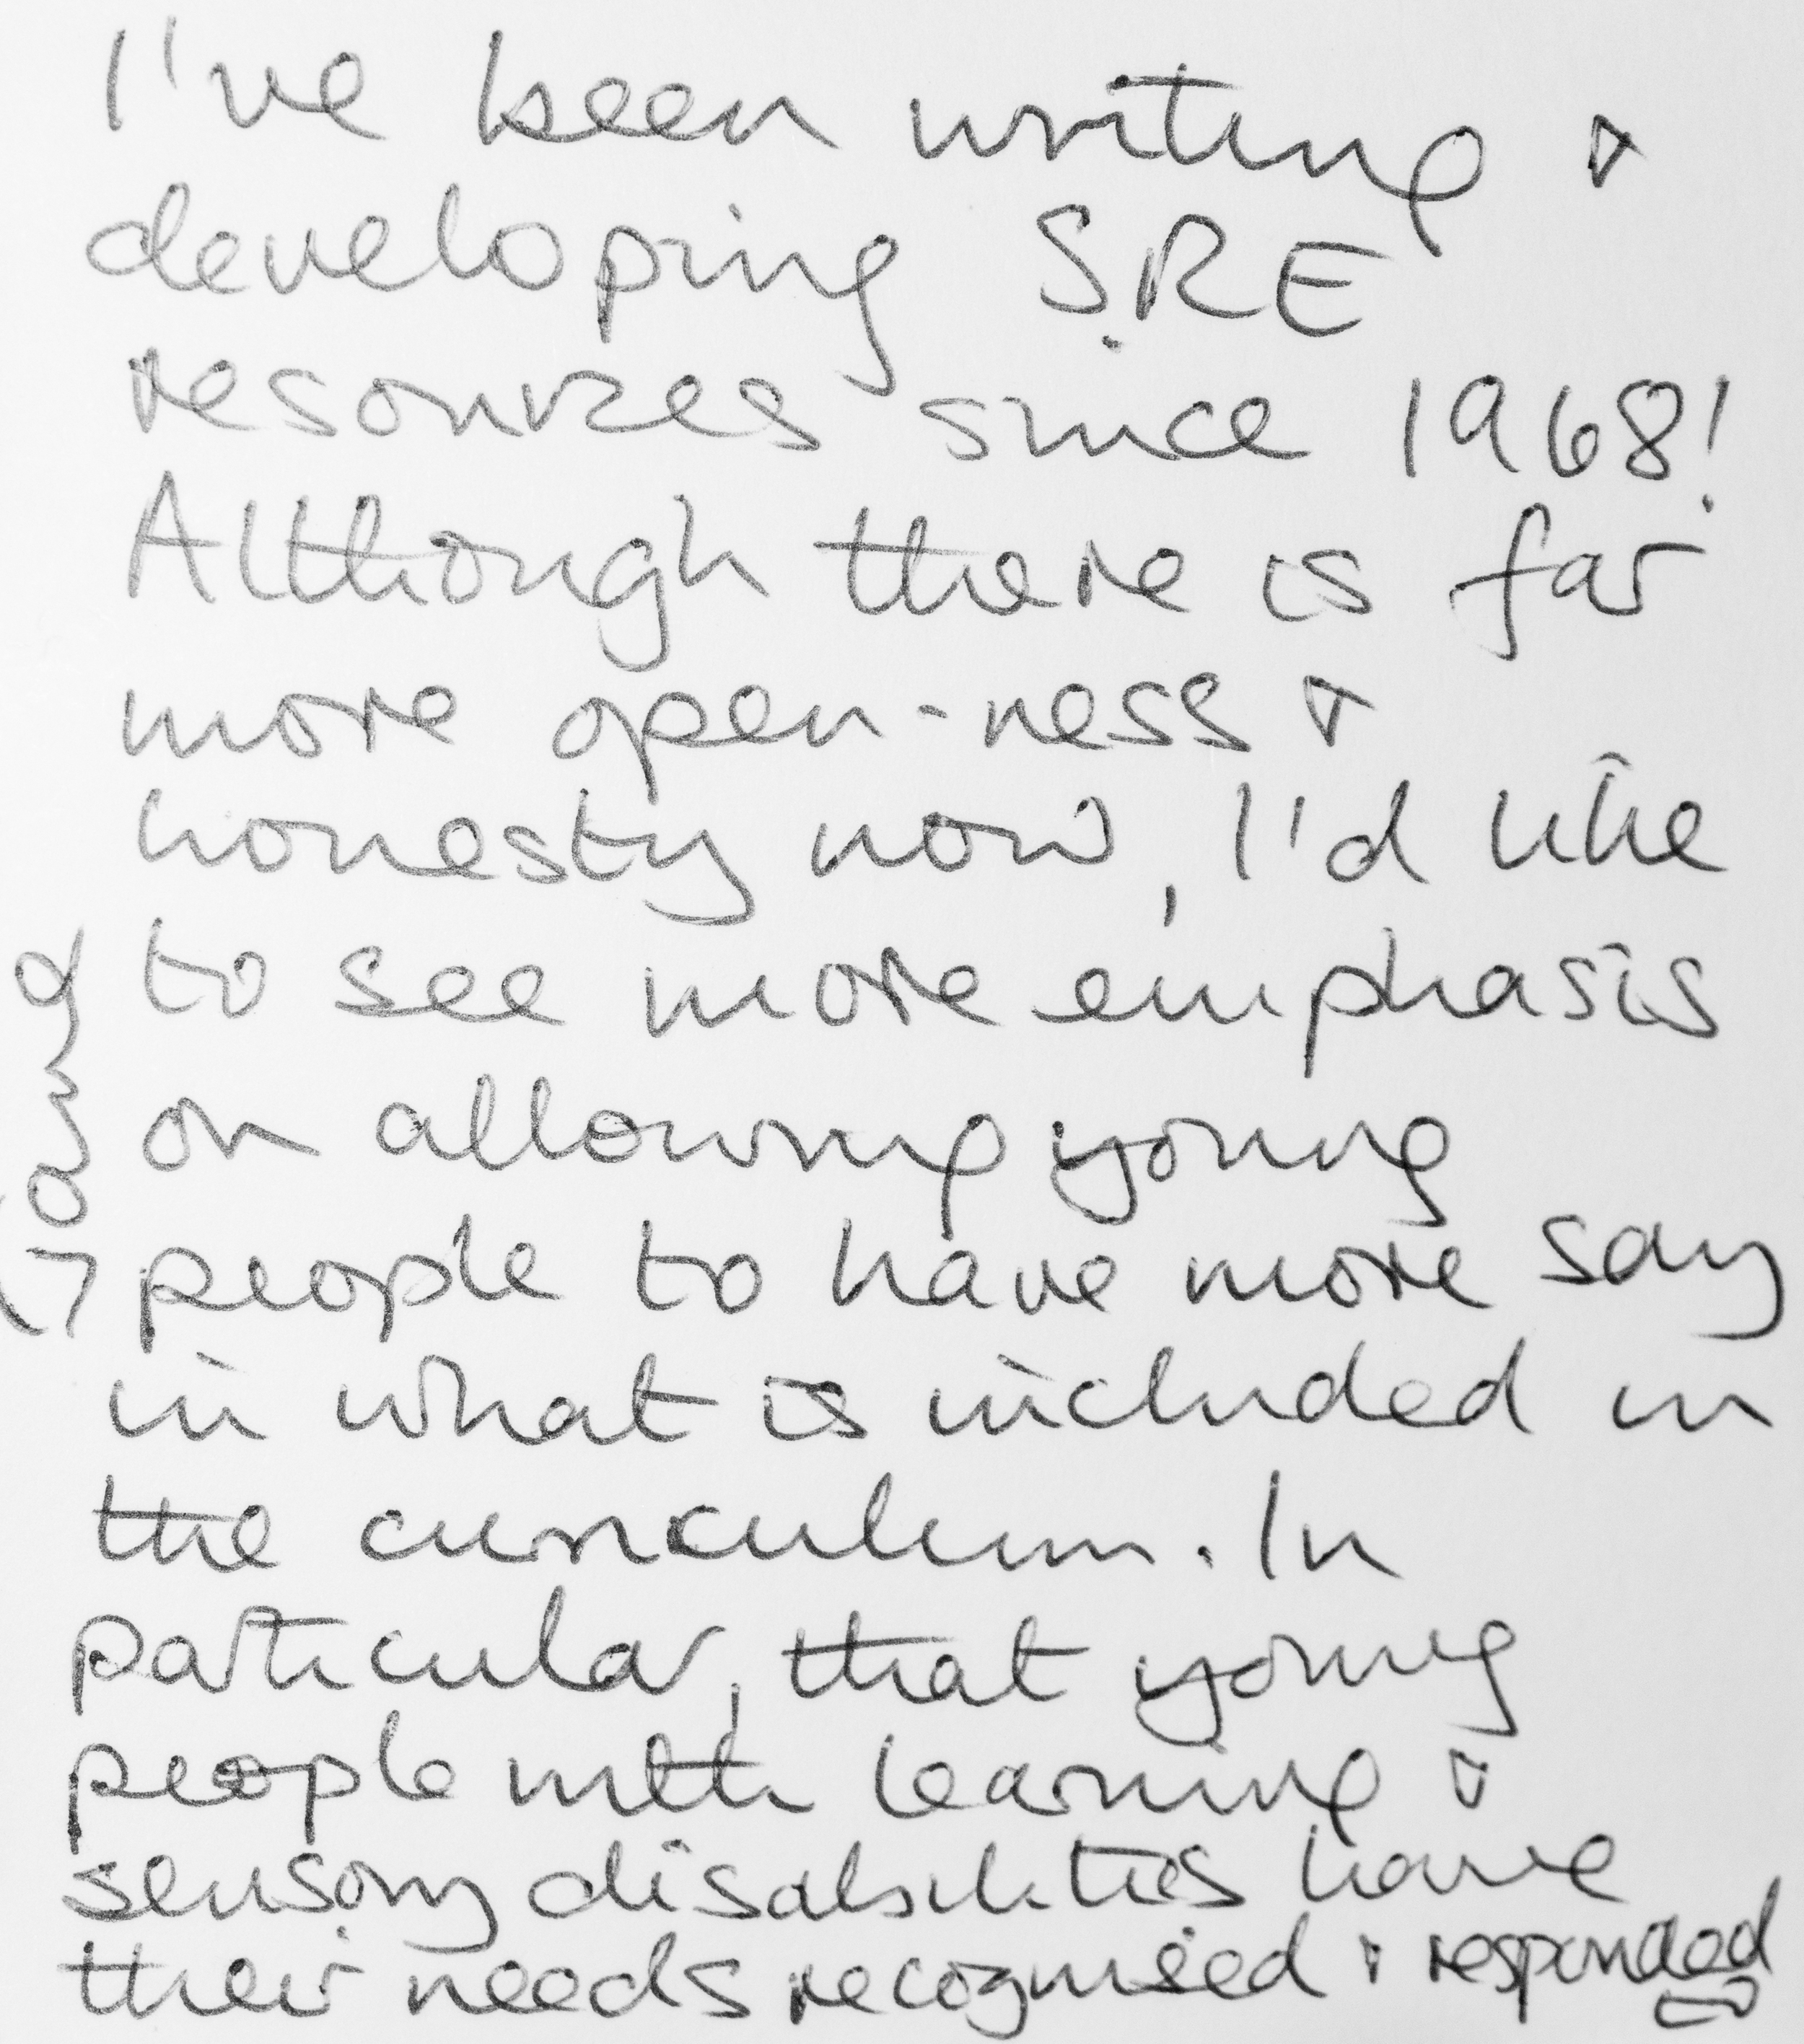 I've been writing and developing SRE resources since 1968! Although there is far more open-ness and honesty now, I'd like to see more emphasis on allowing young people to have more say in what is included in the curriculum. In particular, that young people with learning and sensory disabilities have their needs recognised and responded to. -Jane